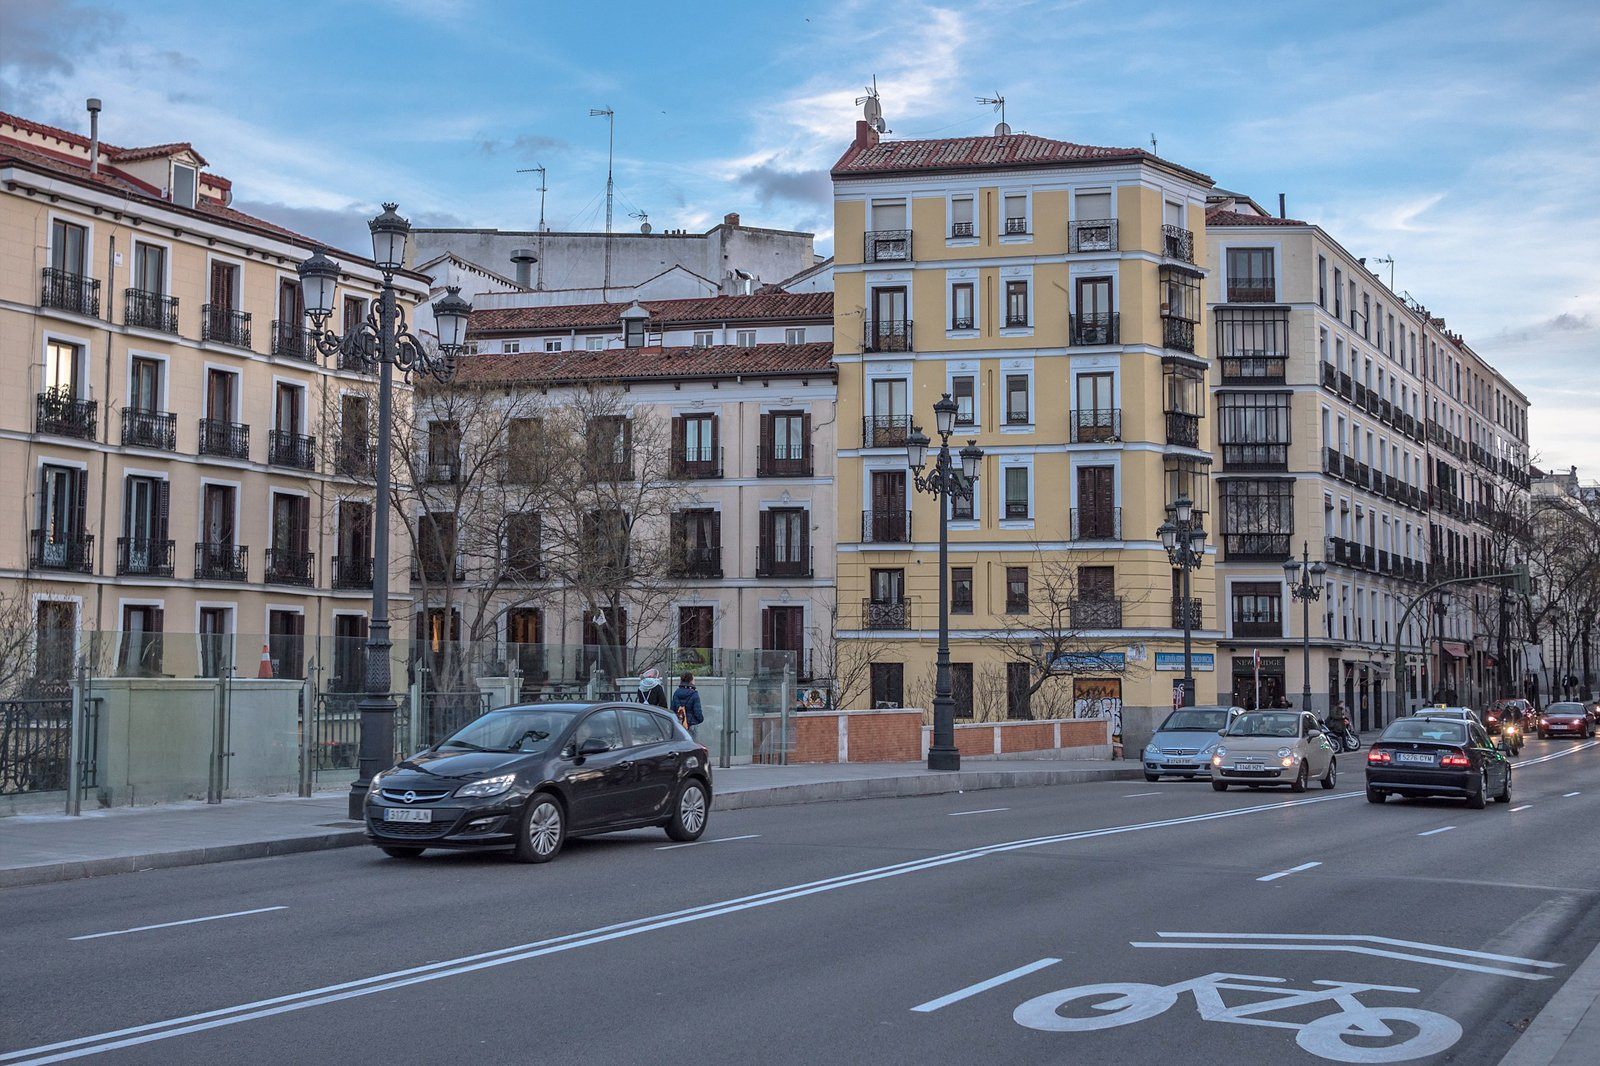 9 Tips for Driving in Spain - Spain Travel Guide